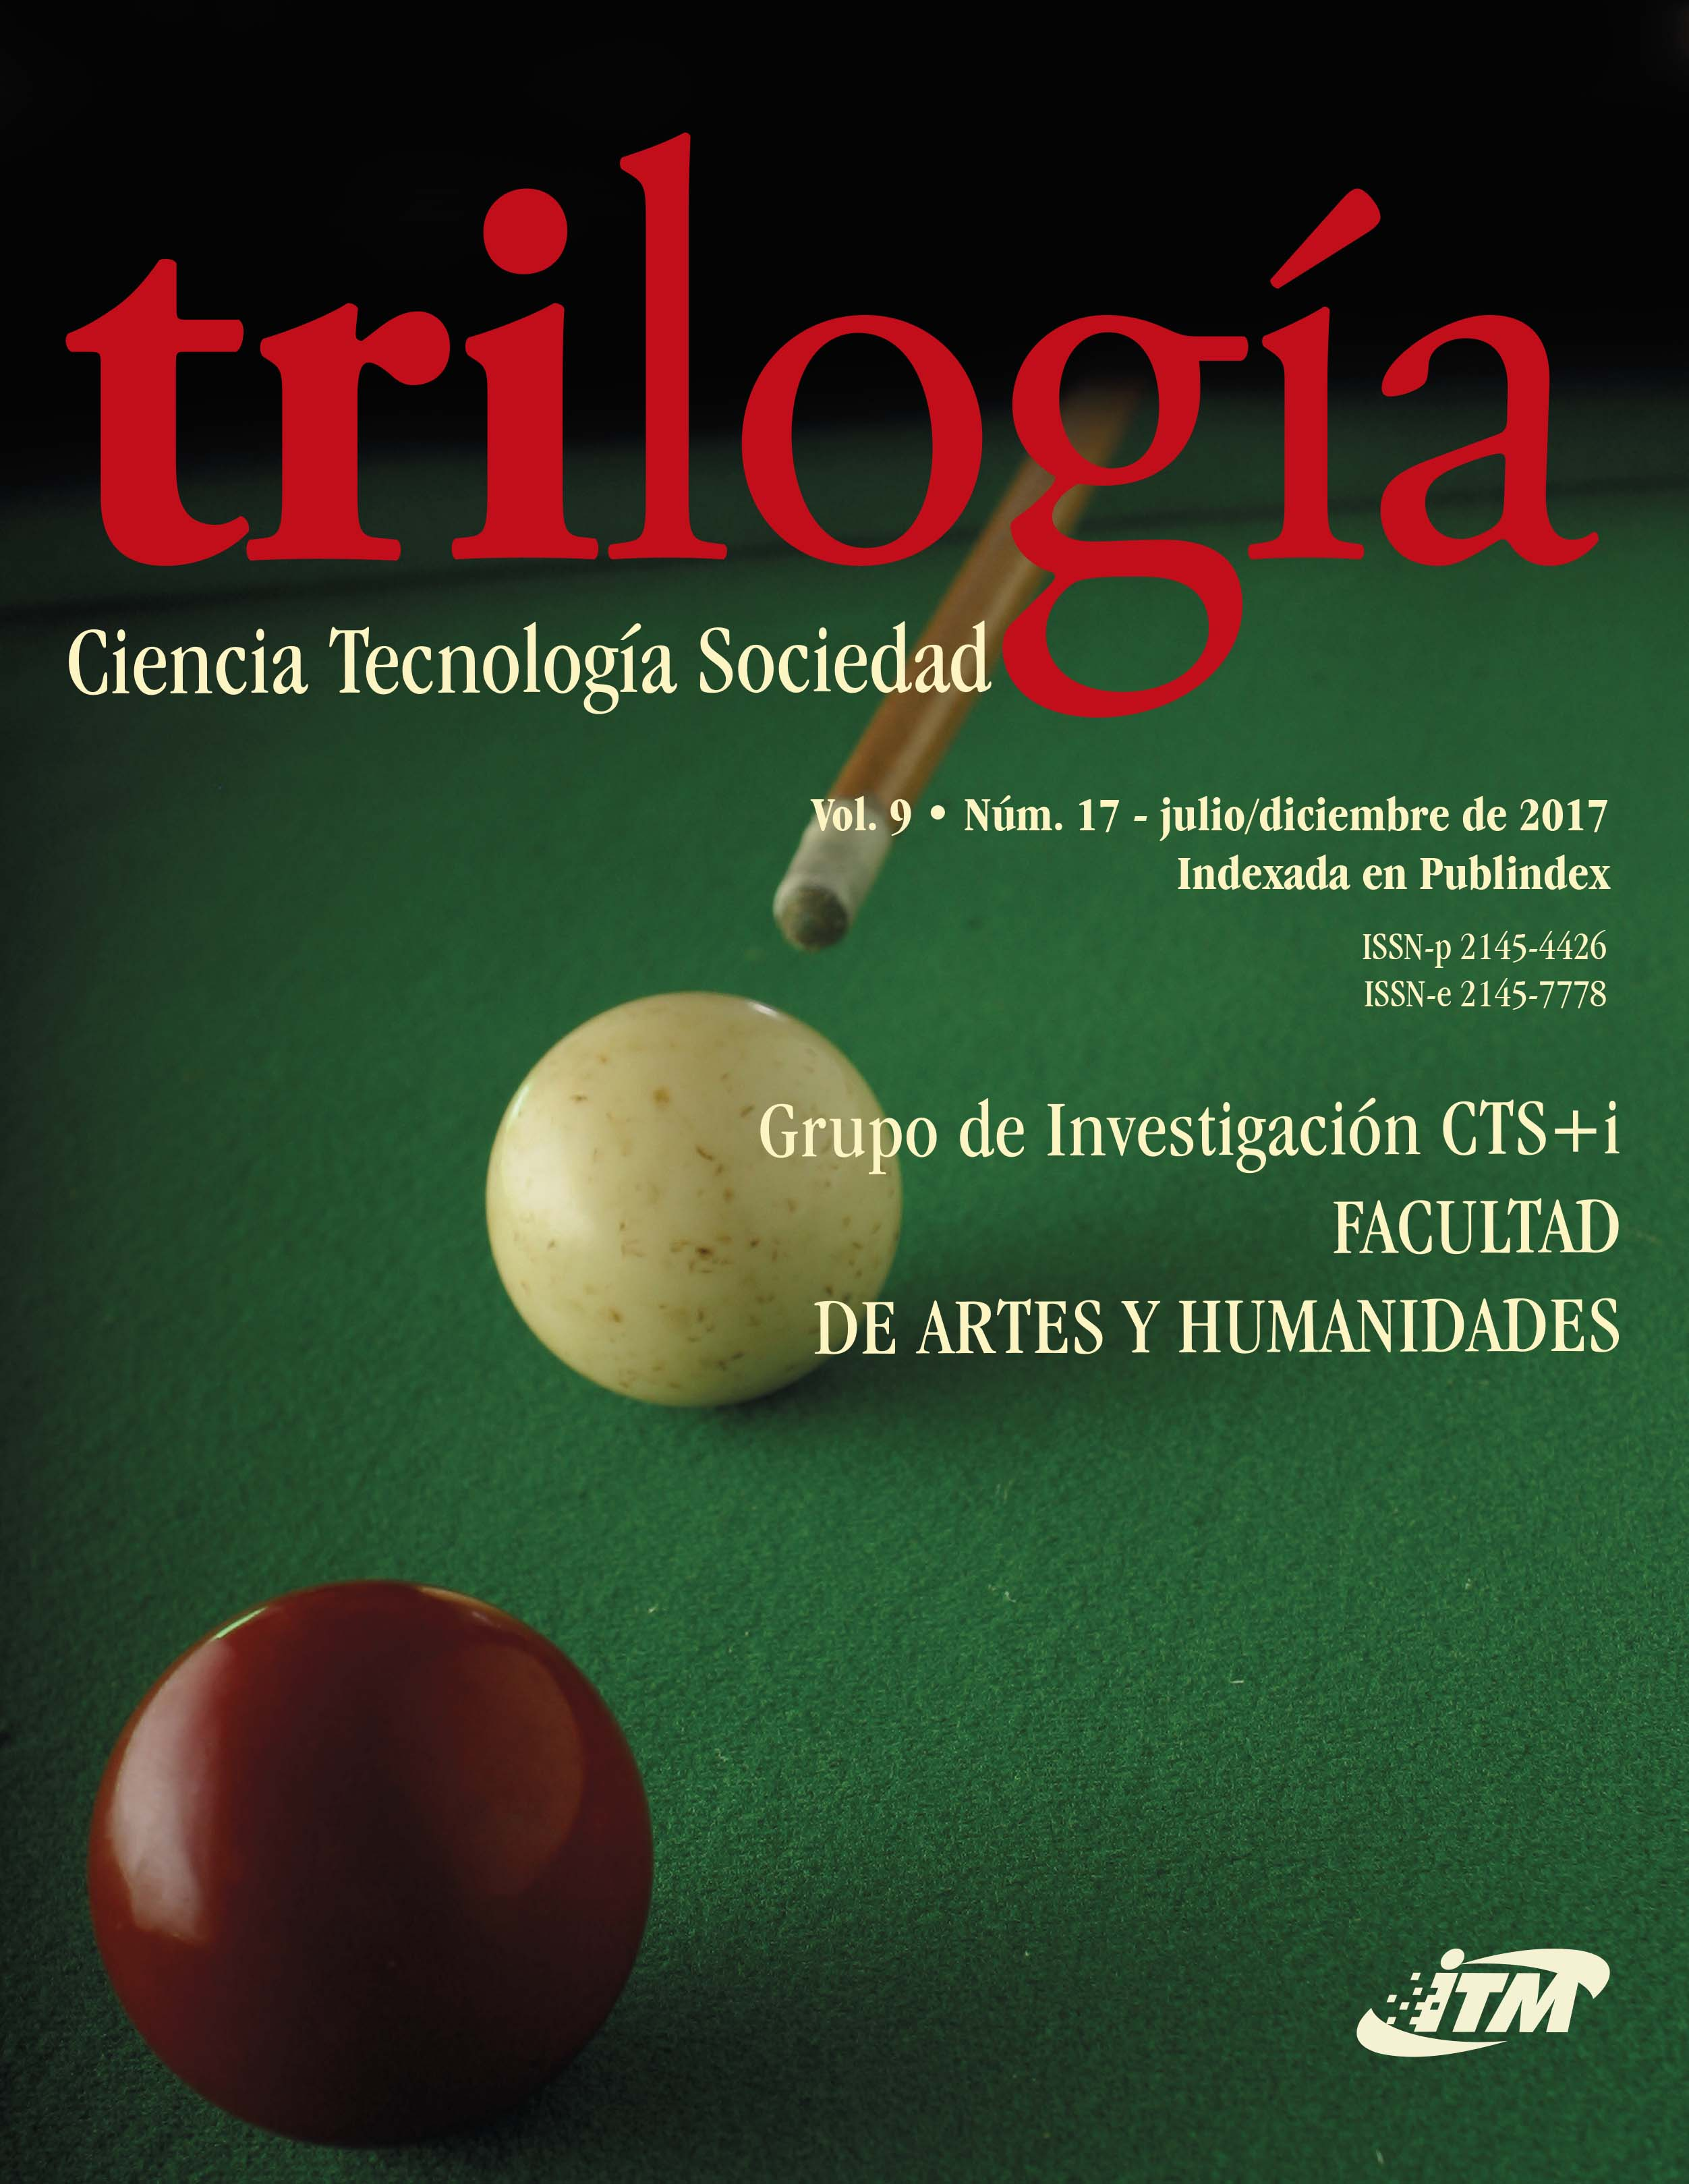 ##numero.coverPage.altText##